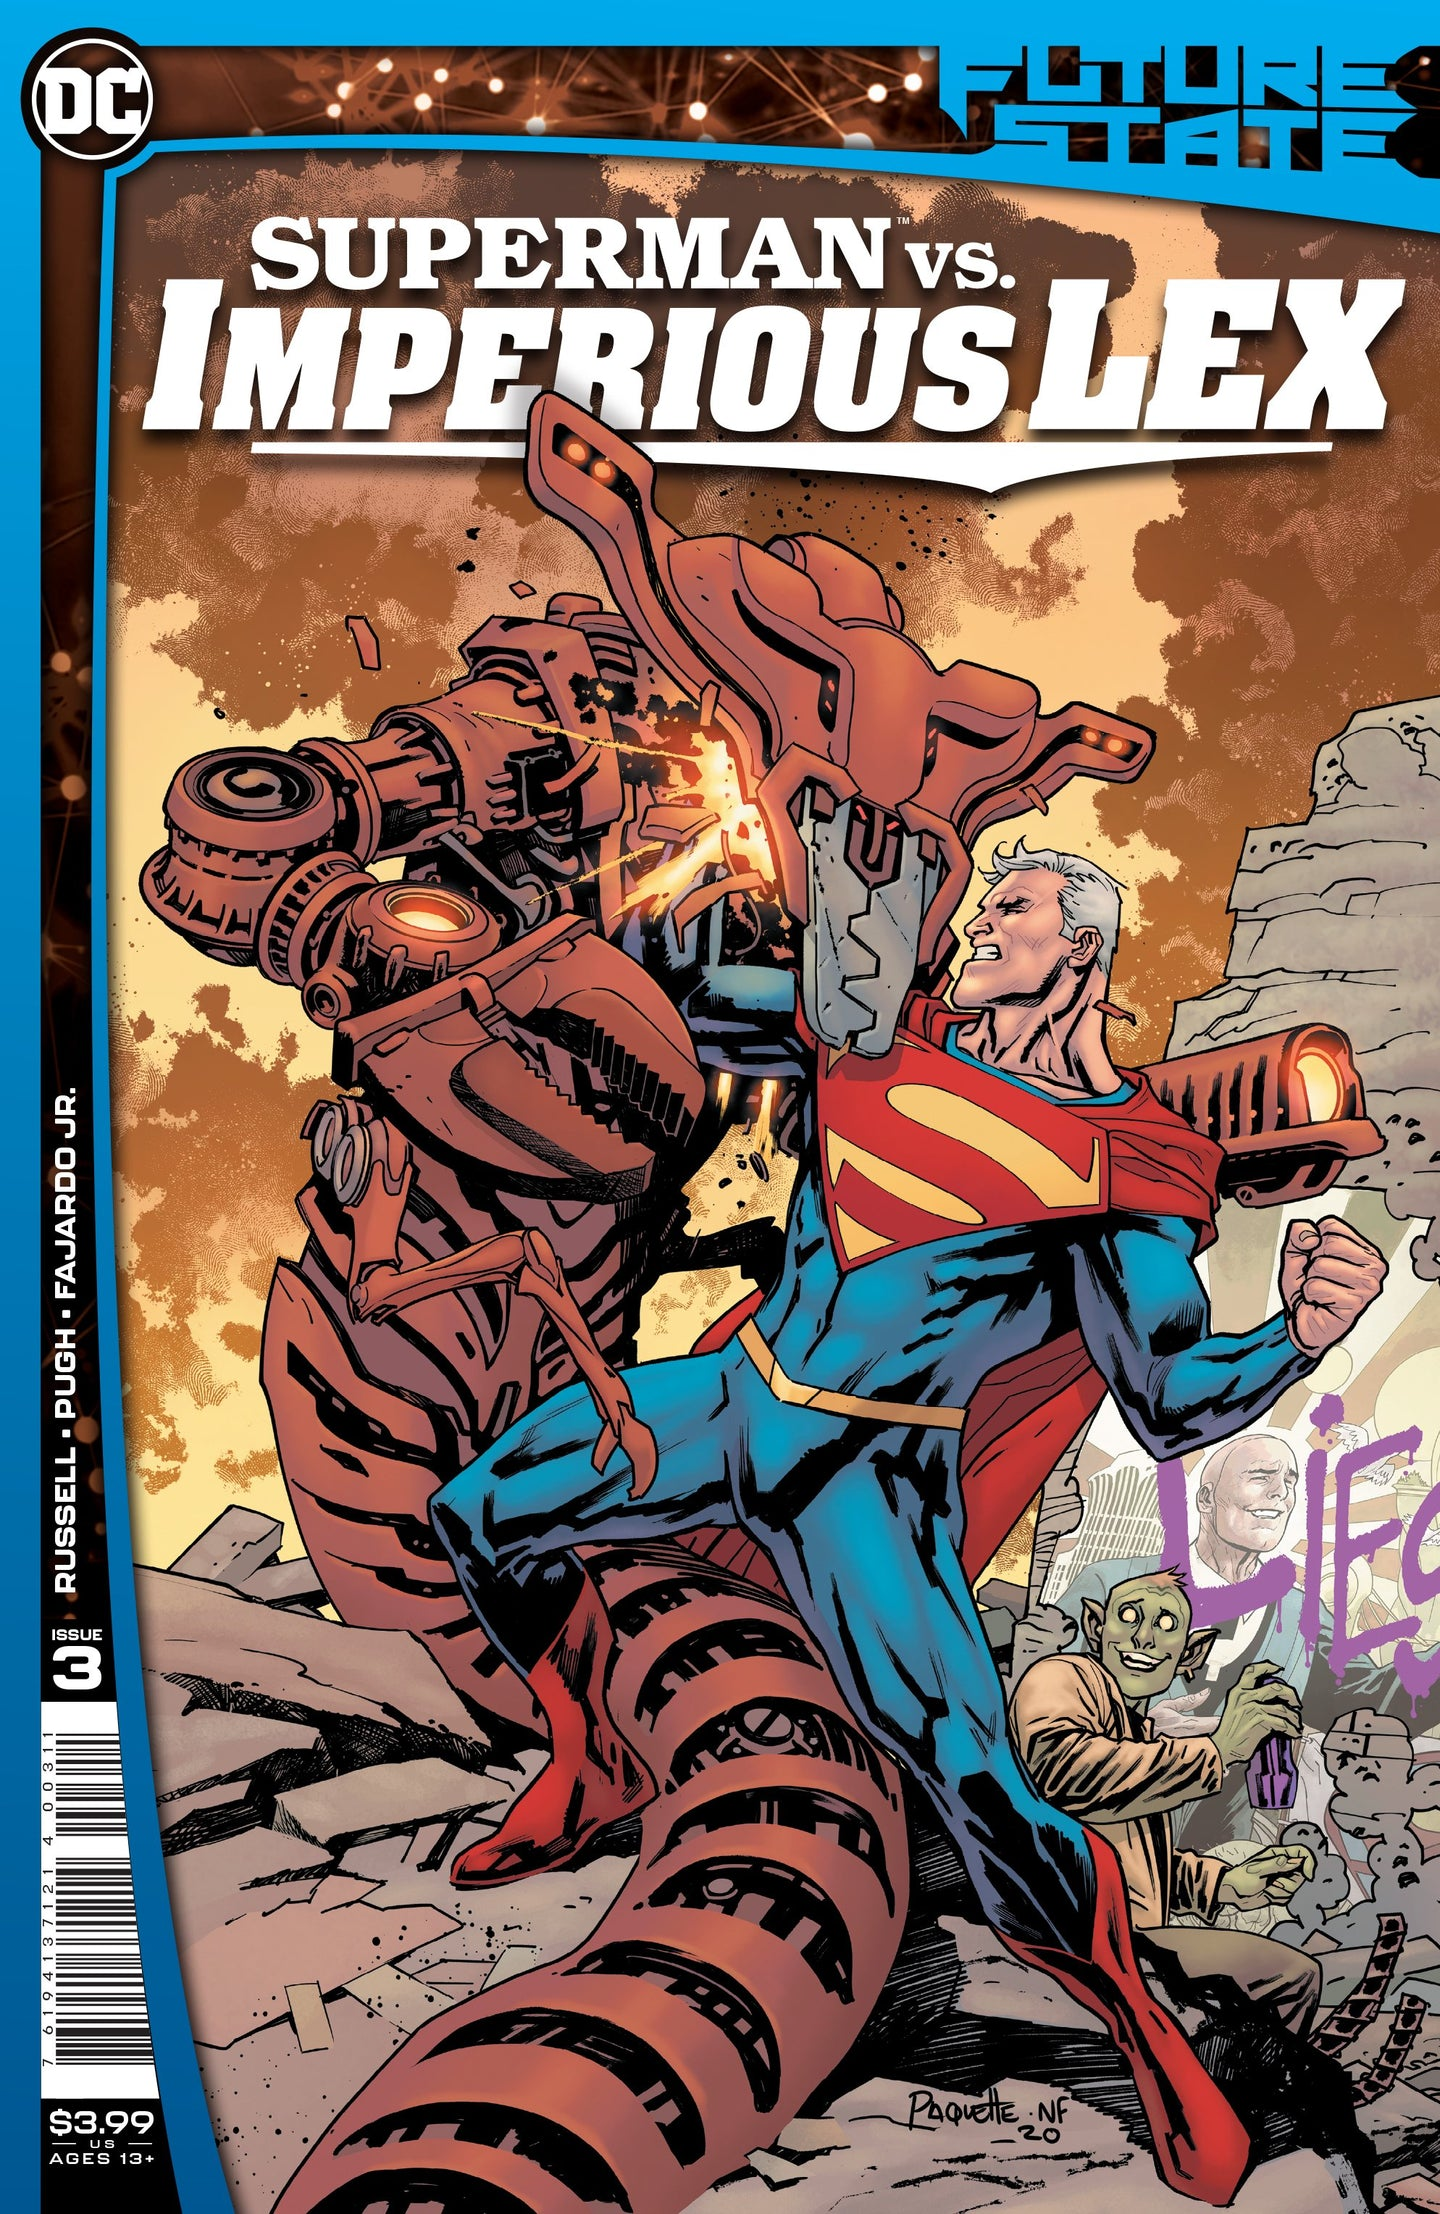 FUTURE STATE SUPERMAN VS IMPERIOUS LEX #3 (OF 3) CVR A YANICK PAQUETTE - Linebreakers